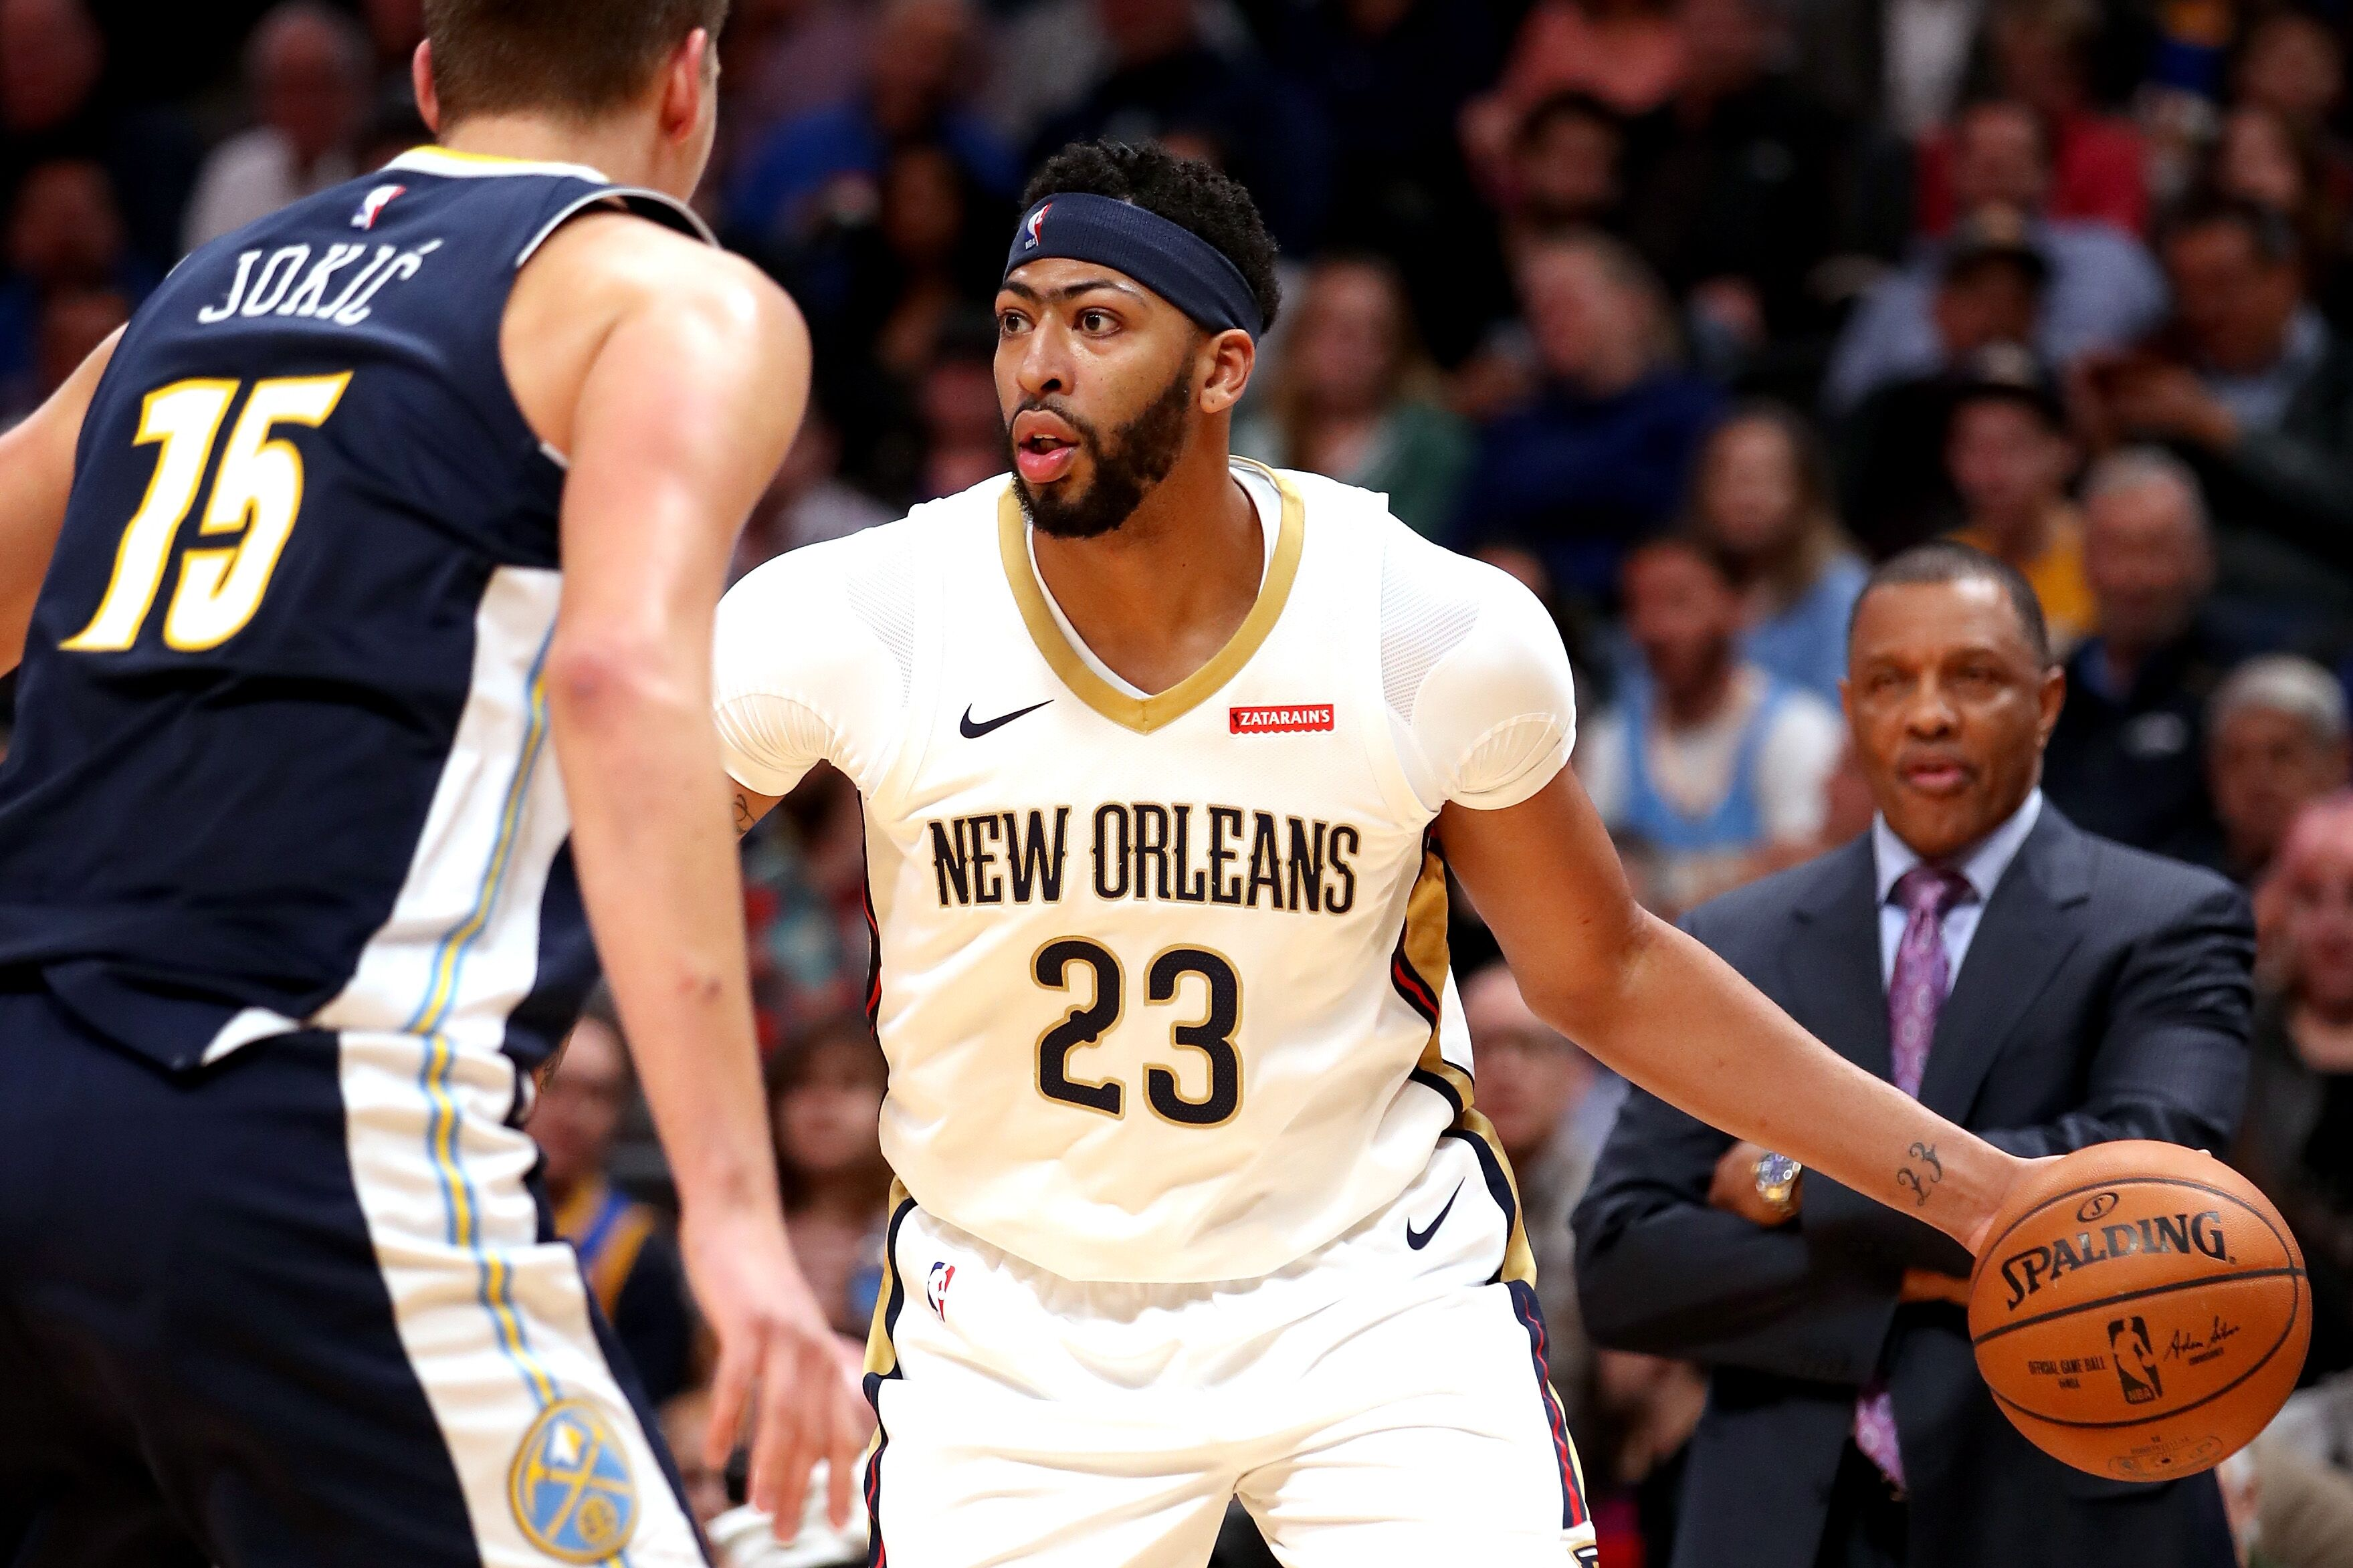 875553460-new-orleans-pelicans-v-denver-nuggets.jpg